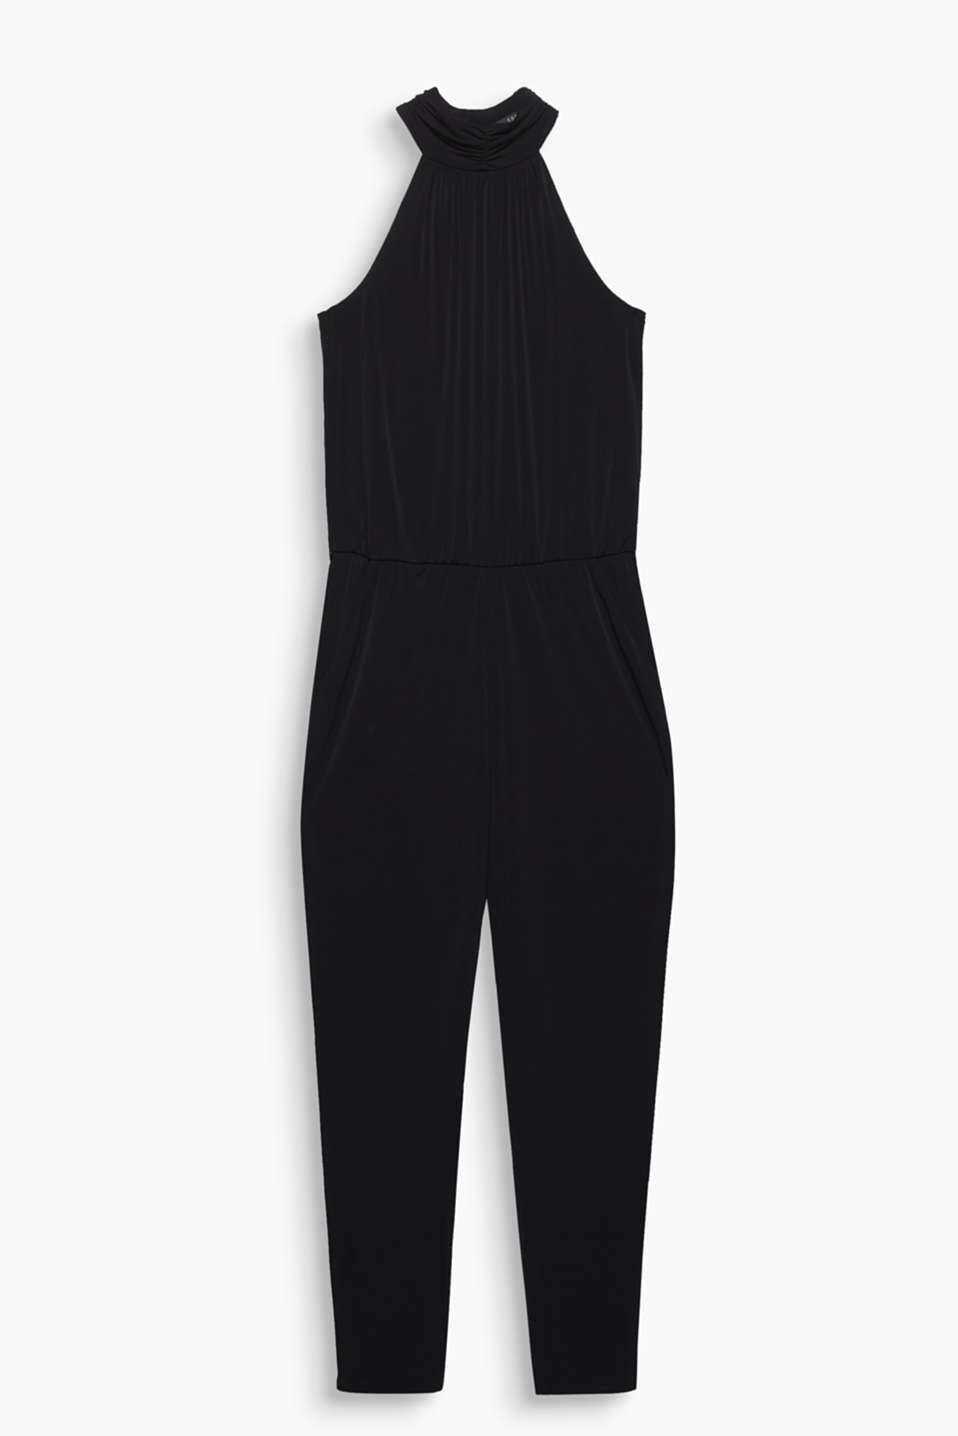 Stylish, stretch jersey jumpsuit with cut-away shoulders and a tie-around belt